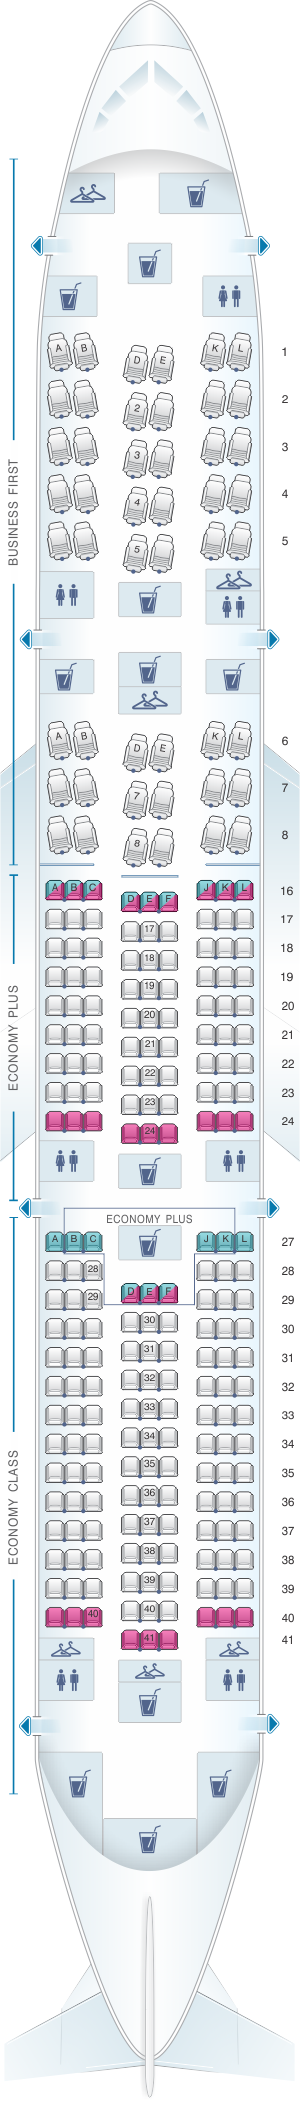 Seat map for United Airlines Boeing B787-9 Dreamliner